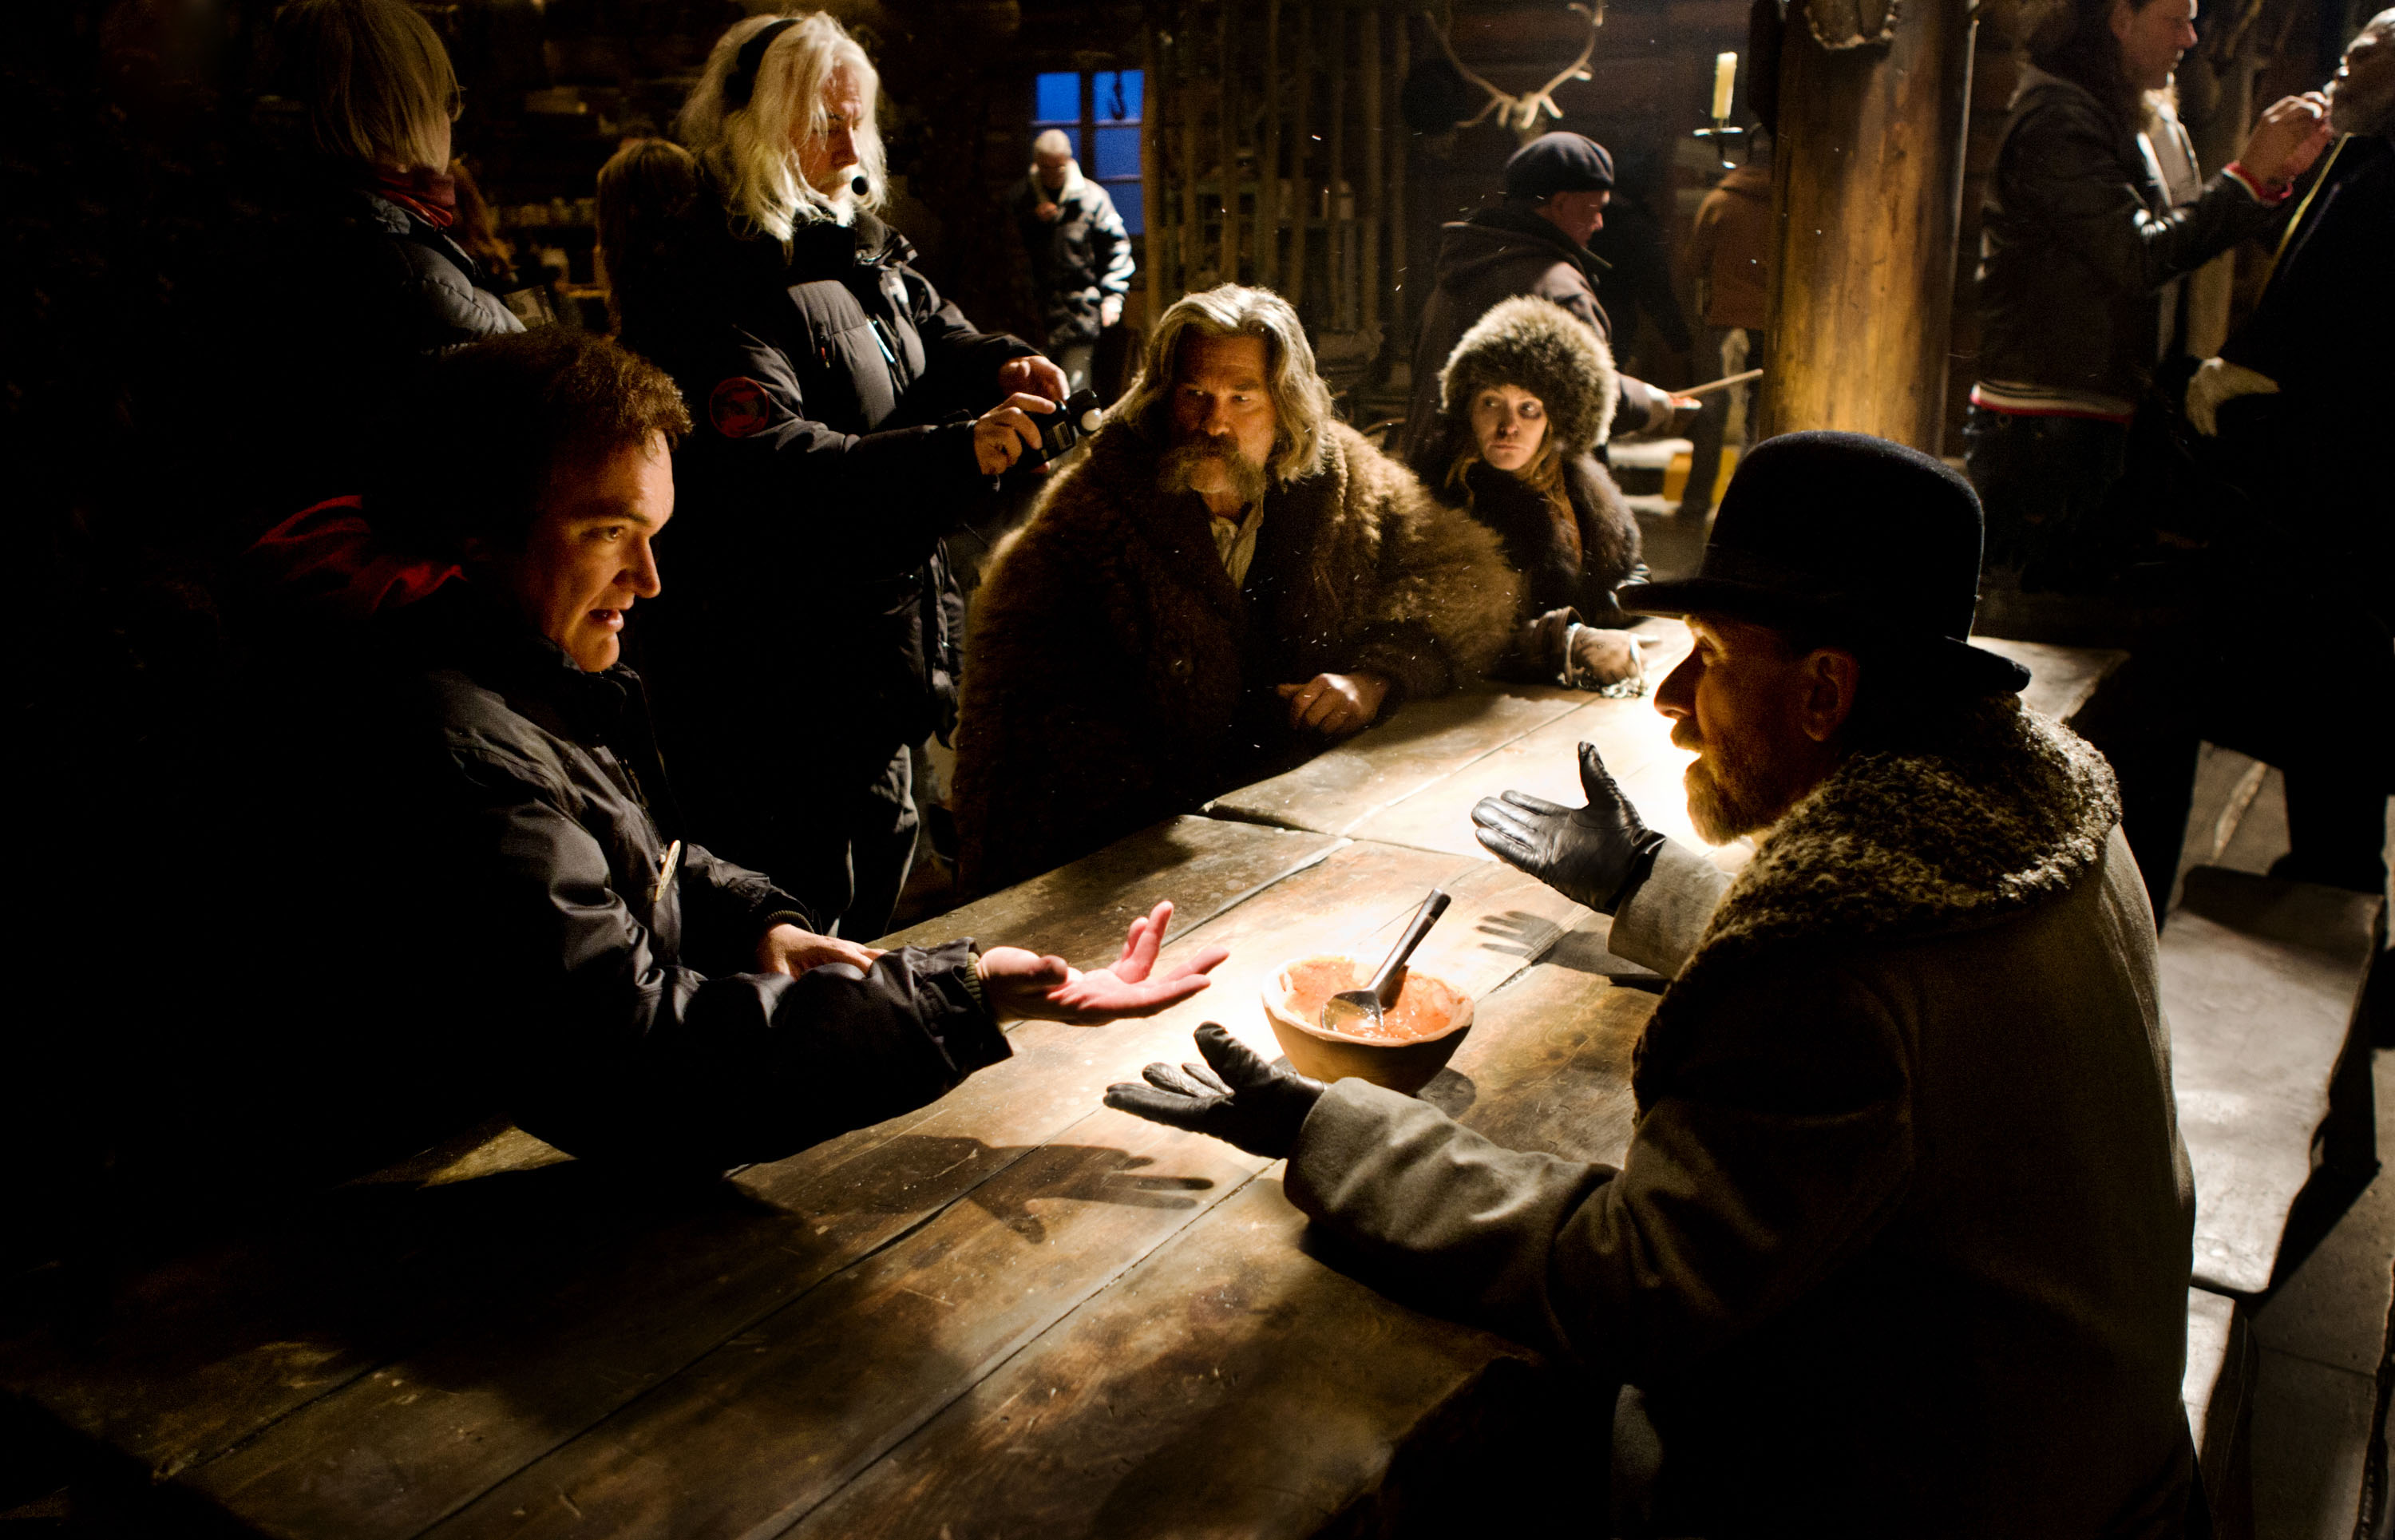 Quentin Tarantino Behind the Scenes: Here's the Director on Set, From 'Reservoir Dogs' to 'Hateful Eight'